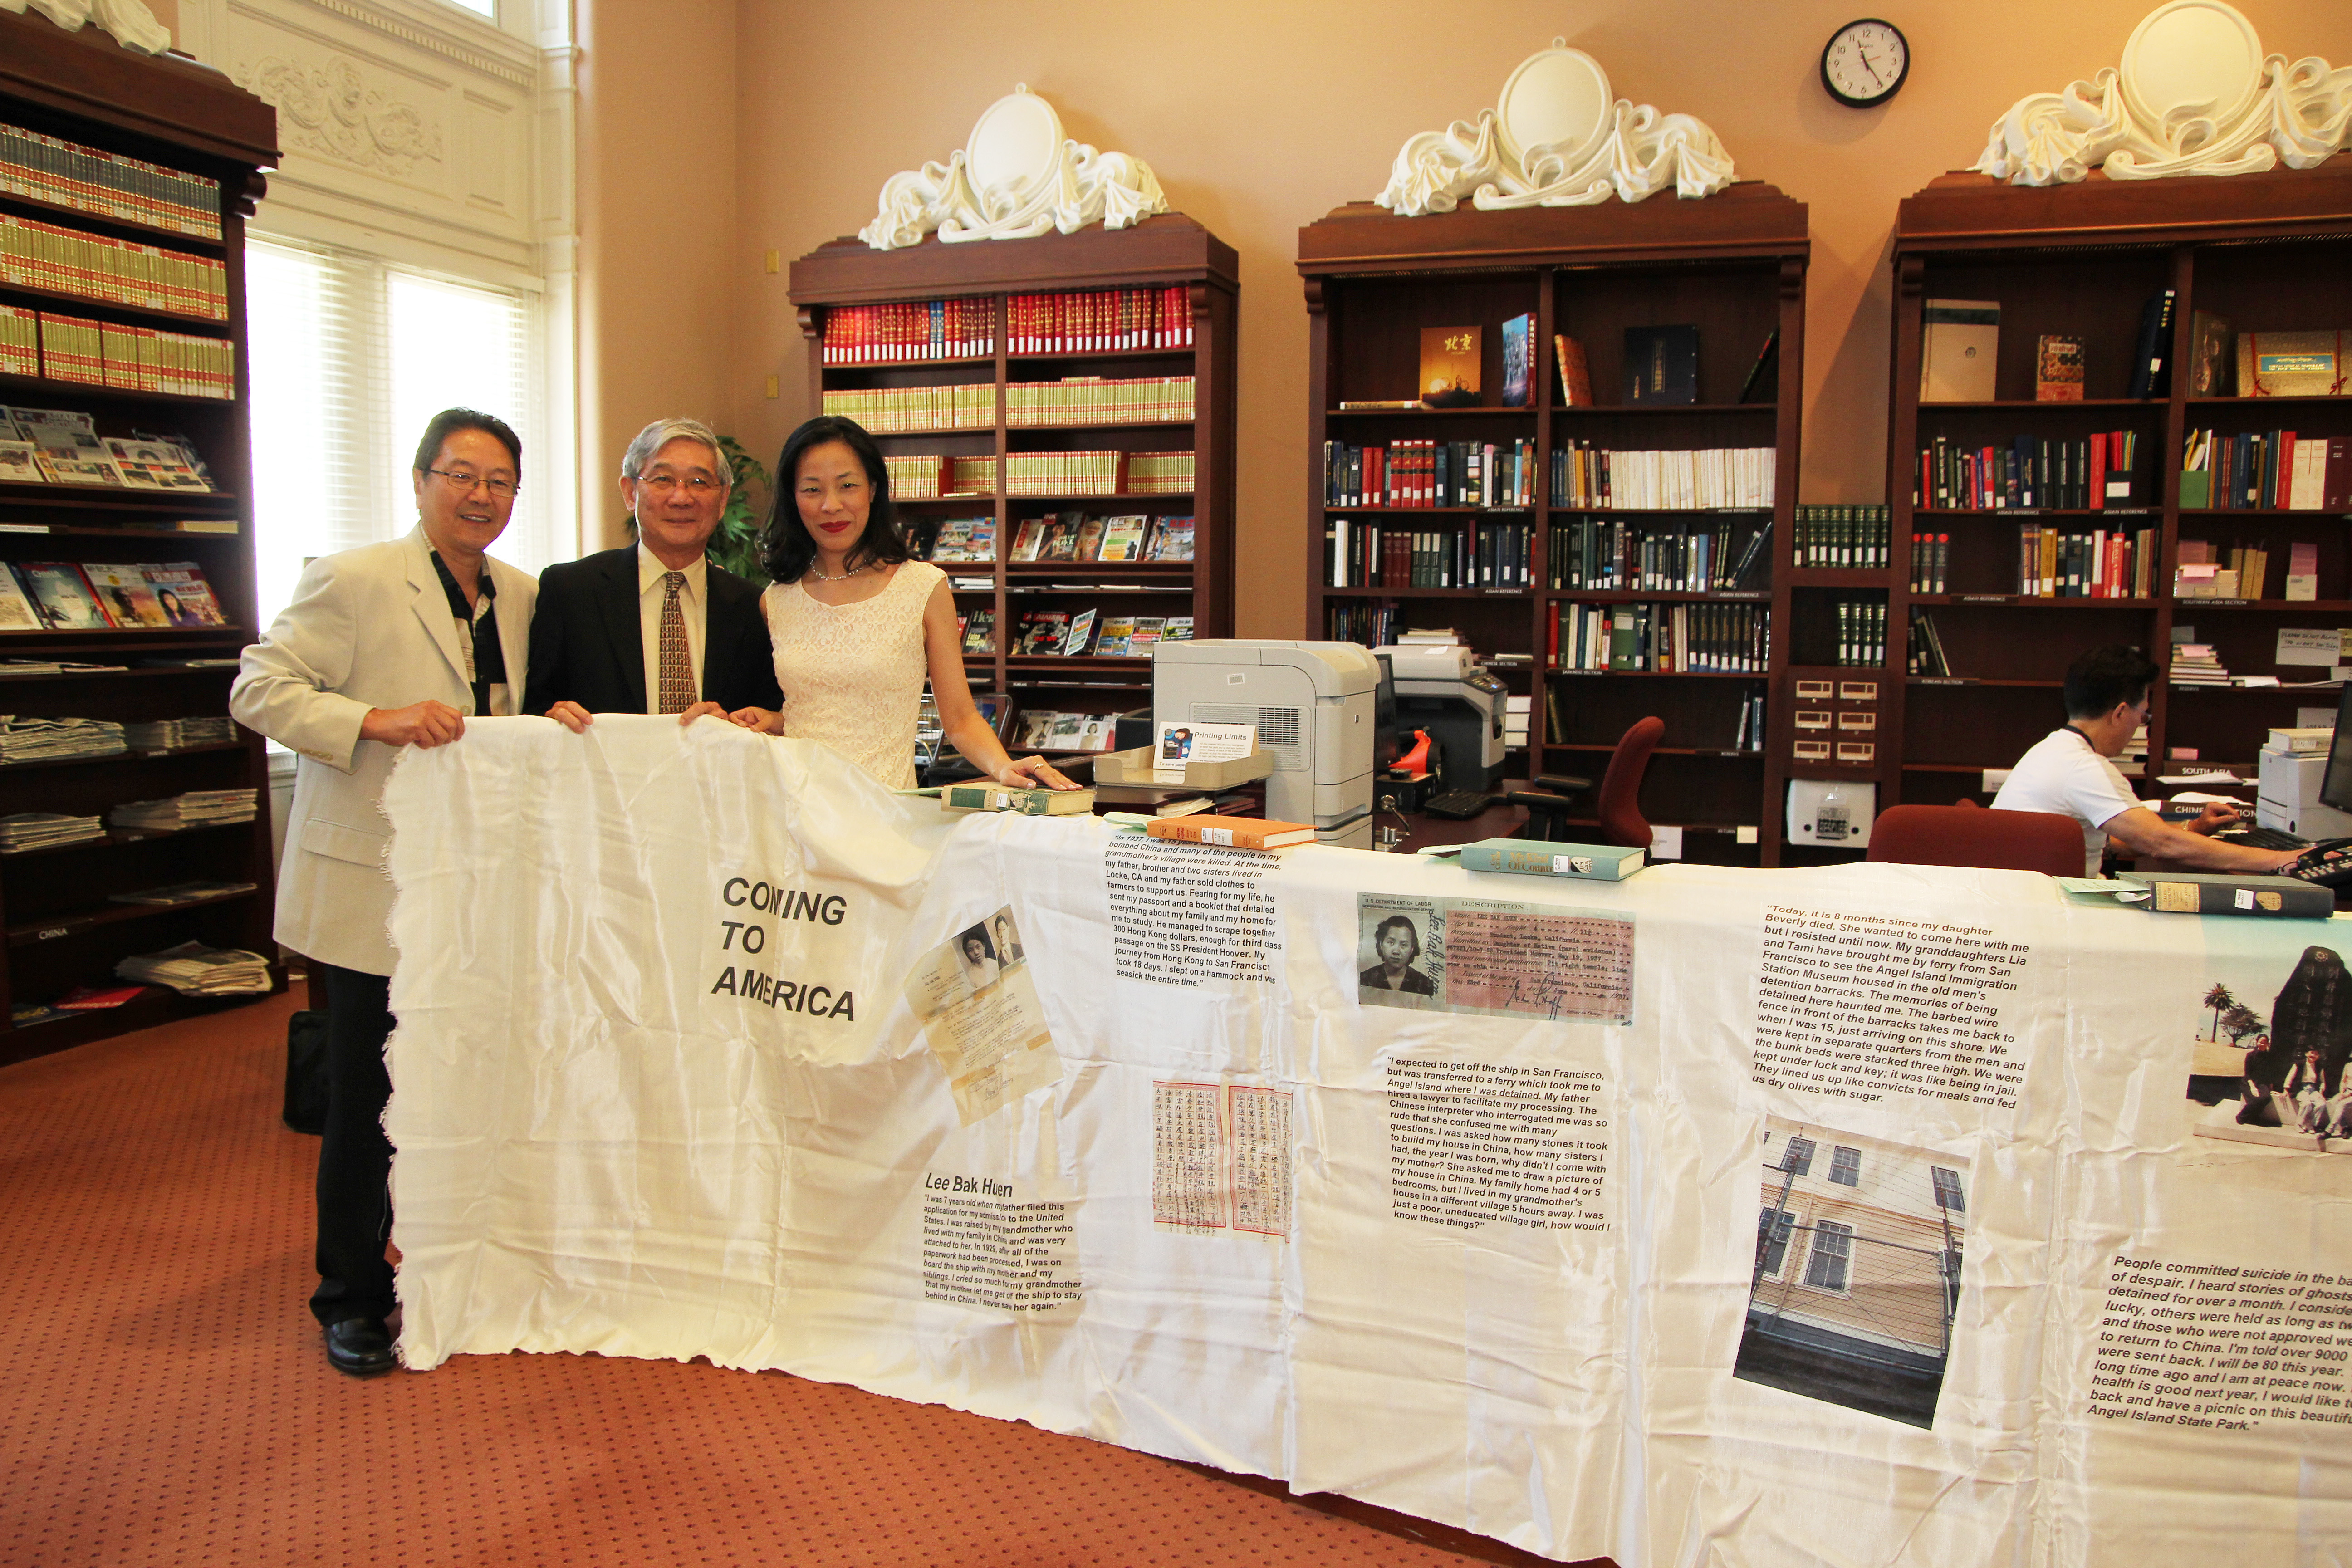 """Rick Shiomi, playwright and artistic director of Mu Performing Arts, Franklin Odo, chief of the Asian Division of the Library of Congress, and artist Lia Chang display """"Coming to America"""", Chang's Fabric Book Art Installation in the Asian Reading Room of the Library of Congress in the Thomas Jefferson Building in Washington D.C. on July 27, 2011. Photo by Reme Grefalda"""